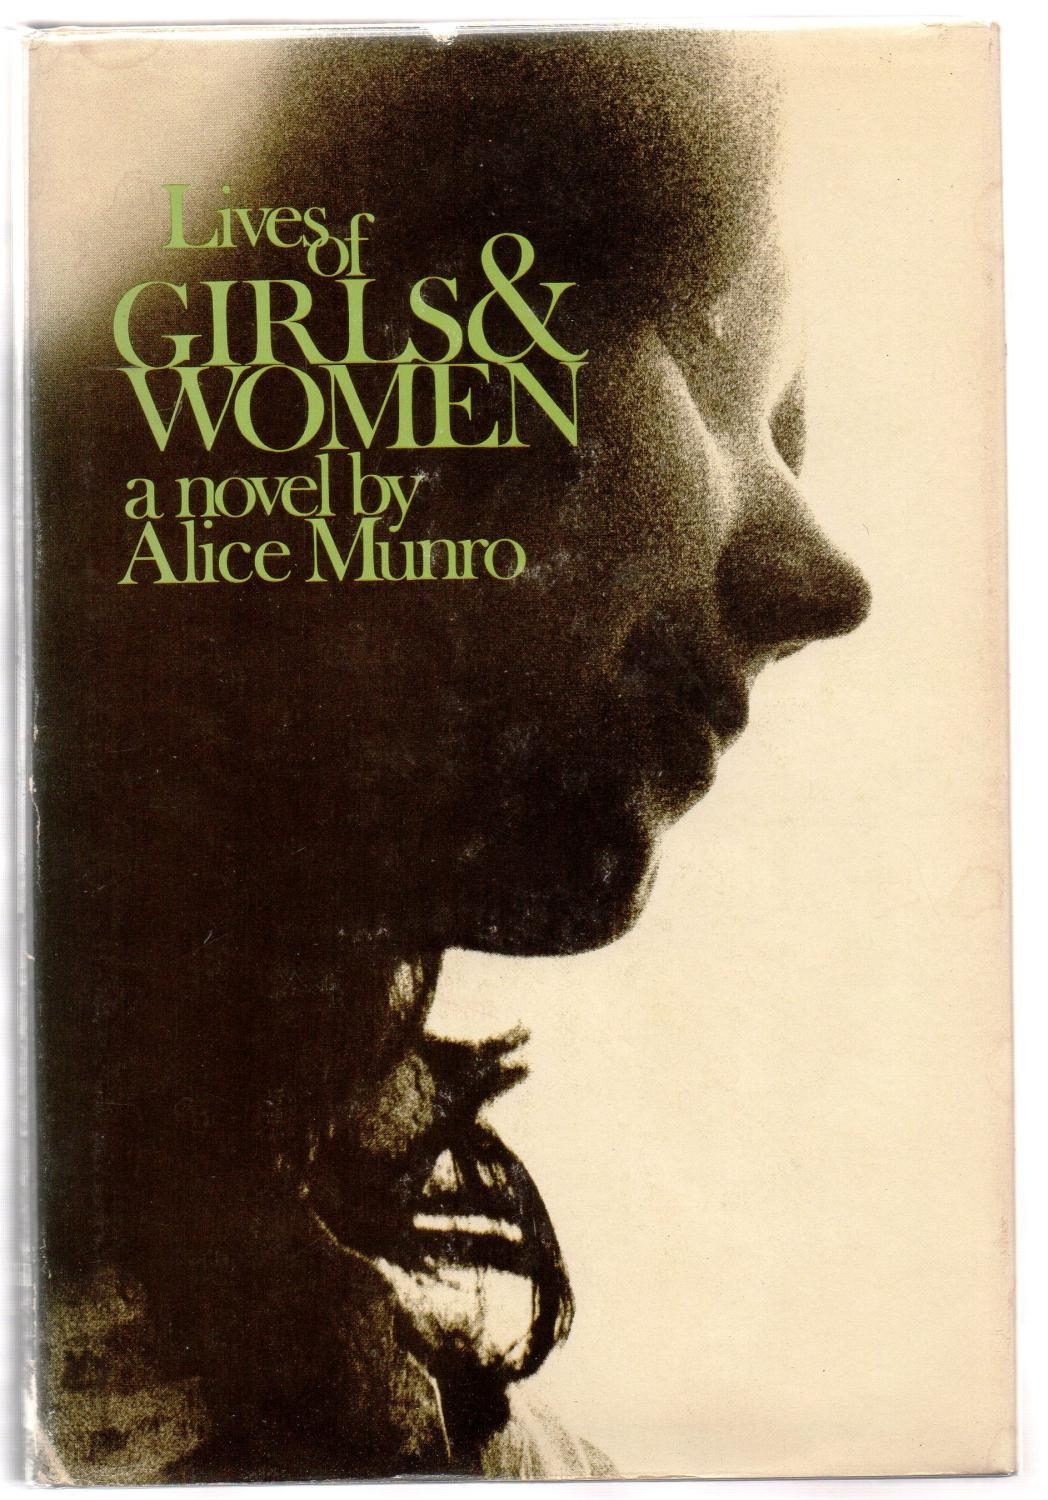 Lives of Girls and Women, by Alice Munro.